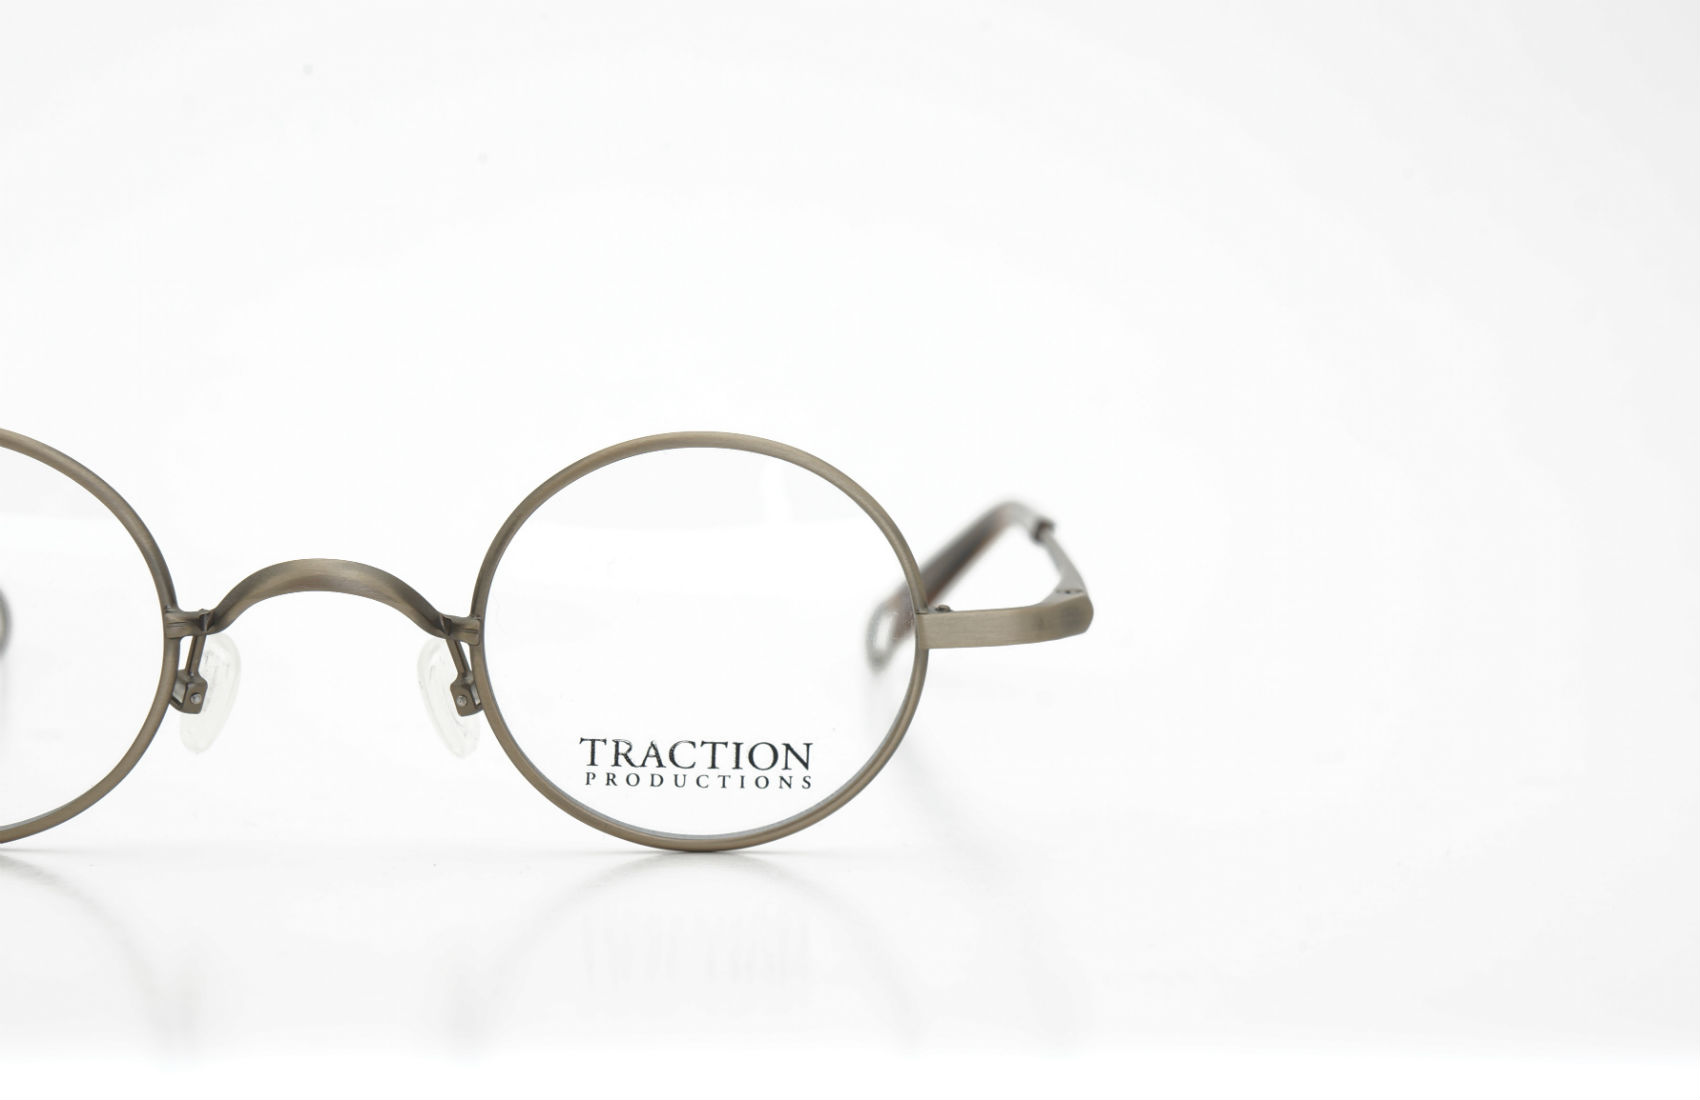 Traction Productions Eyewear GALILEO